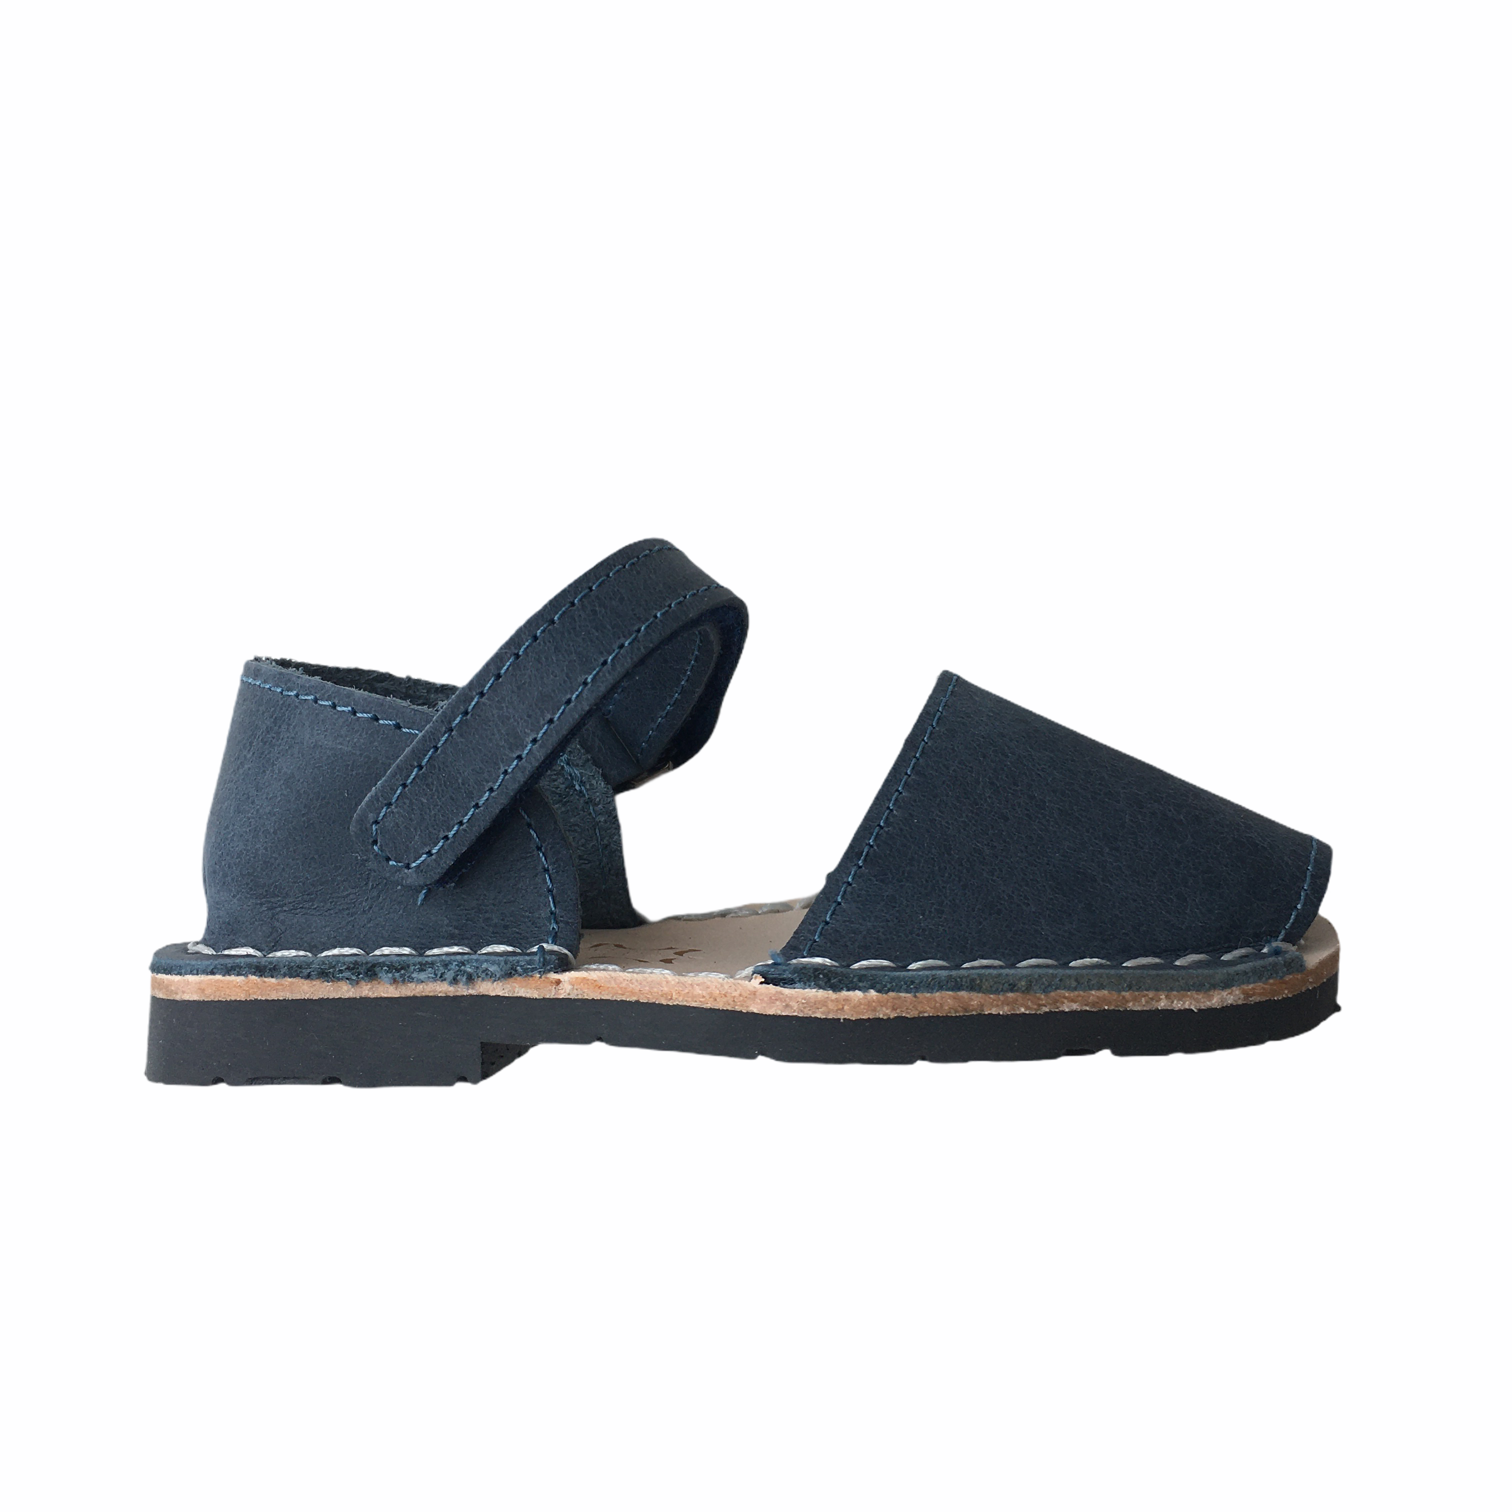 Pons  leather avarca sandal child BOSQUE - navy blue - 22 to 25